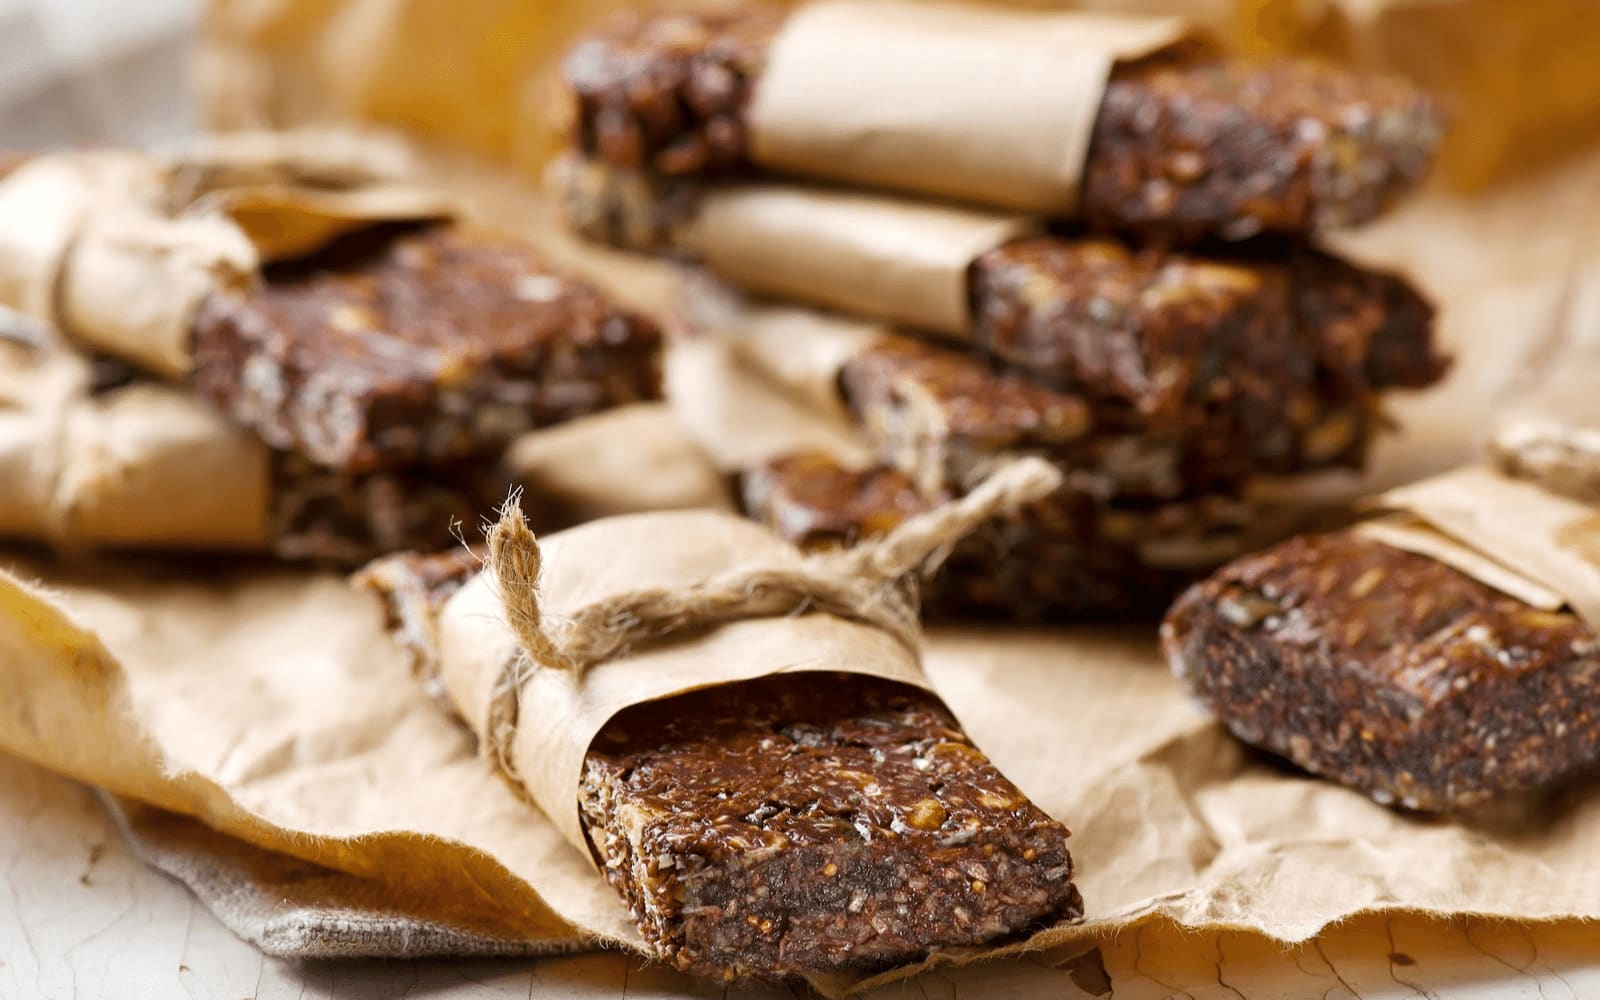 VEGAN: Chocolate Protein Bars